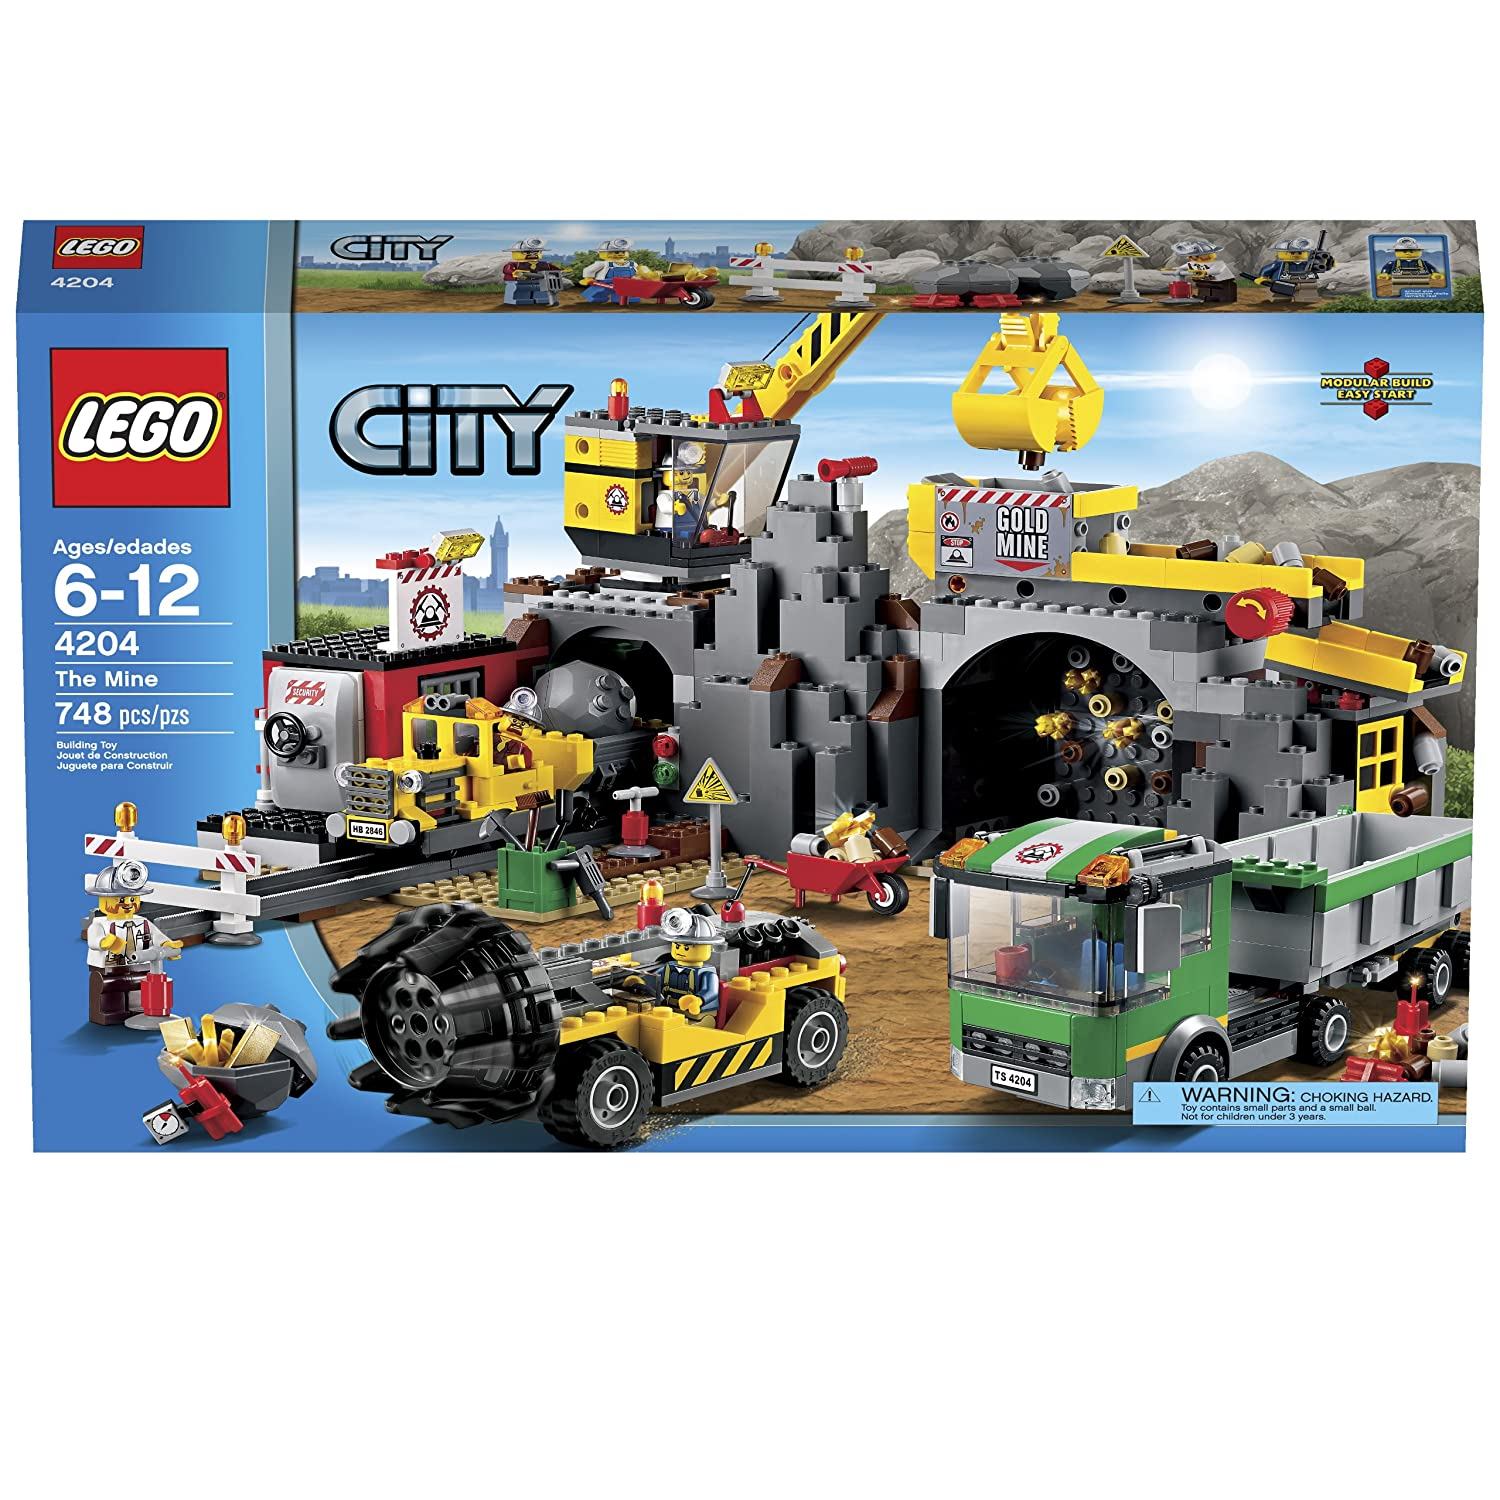 amazon com lego city 4204 the mine discontinued by manufacturer